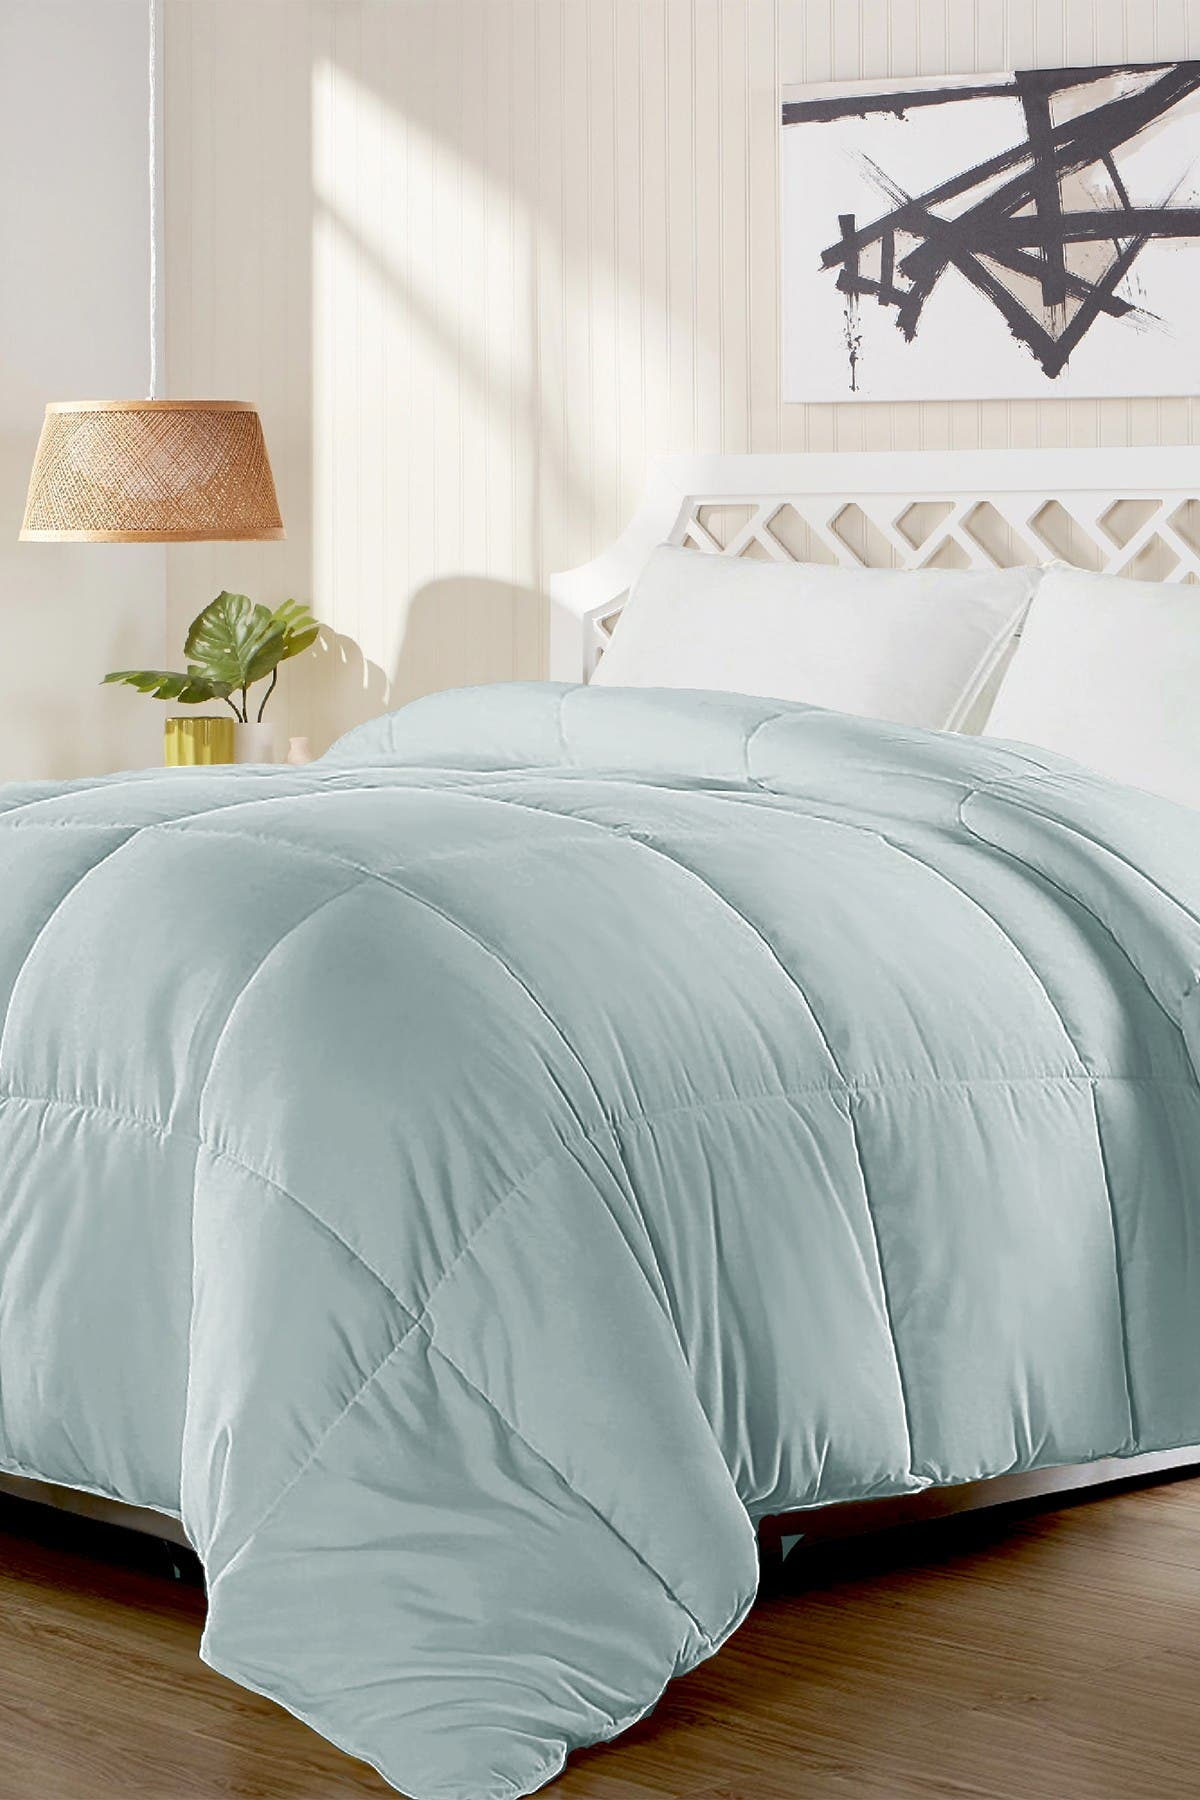 Image of Blue Ridge Home Fashions All Season Duck Feather and Down Comforter - King - Light Blue